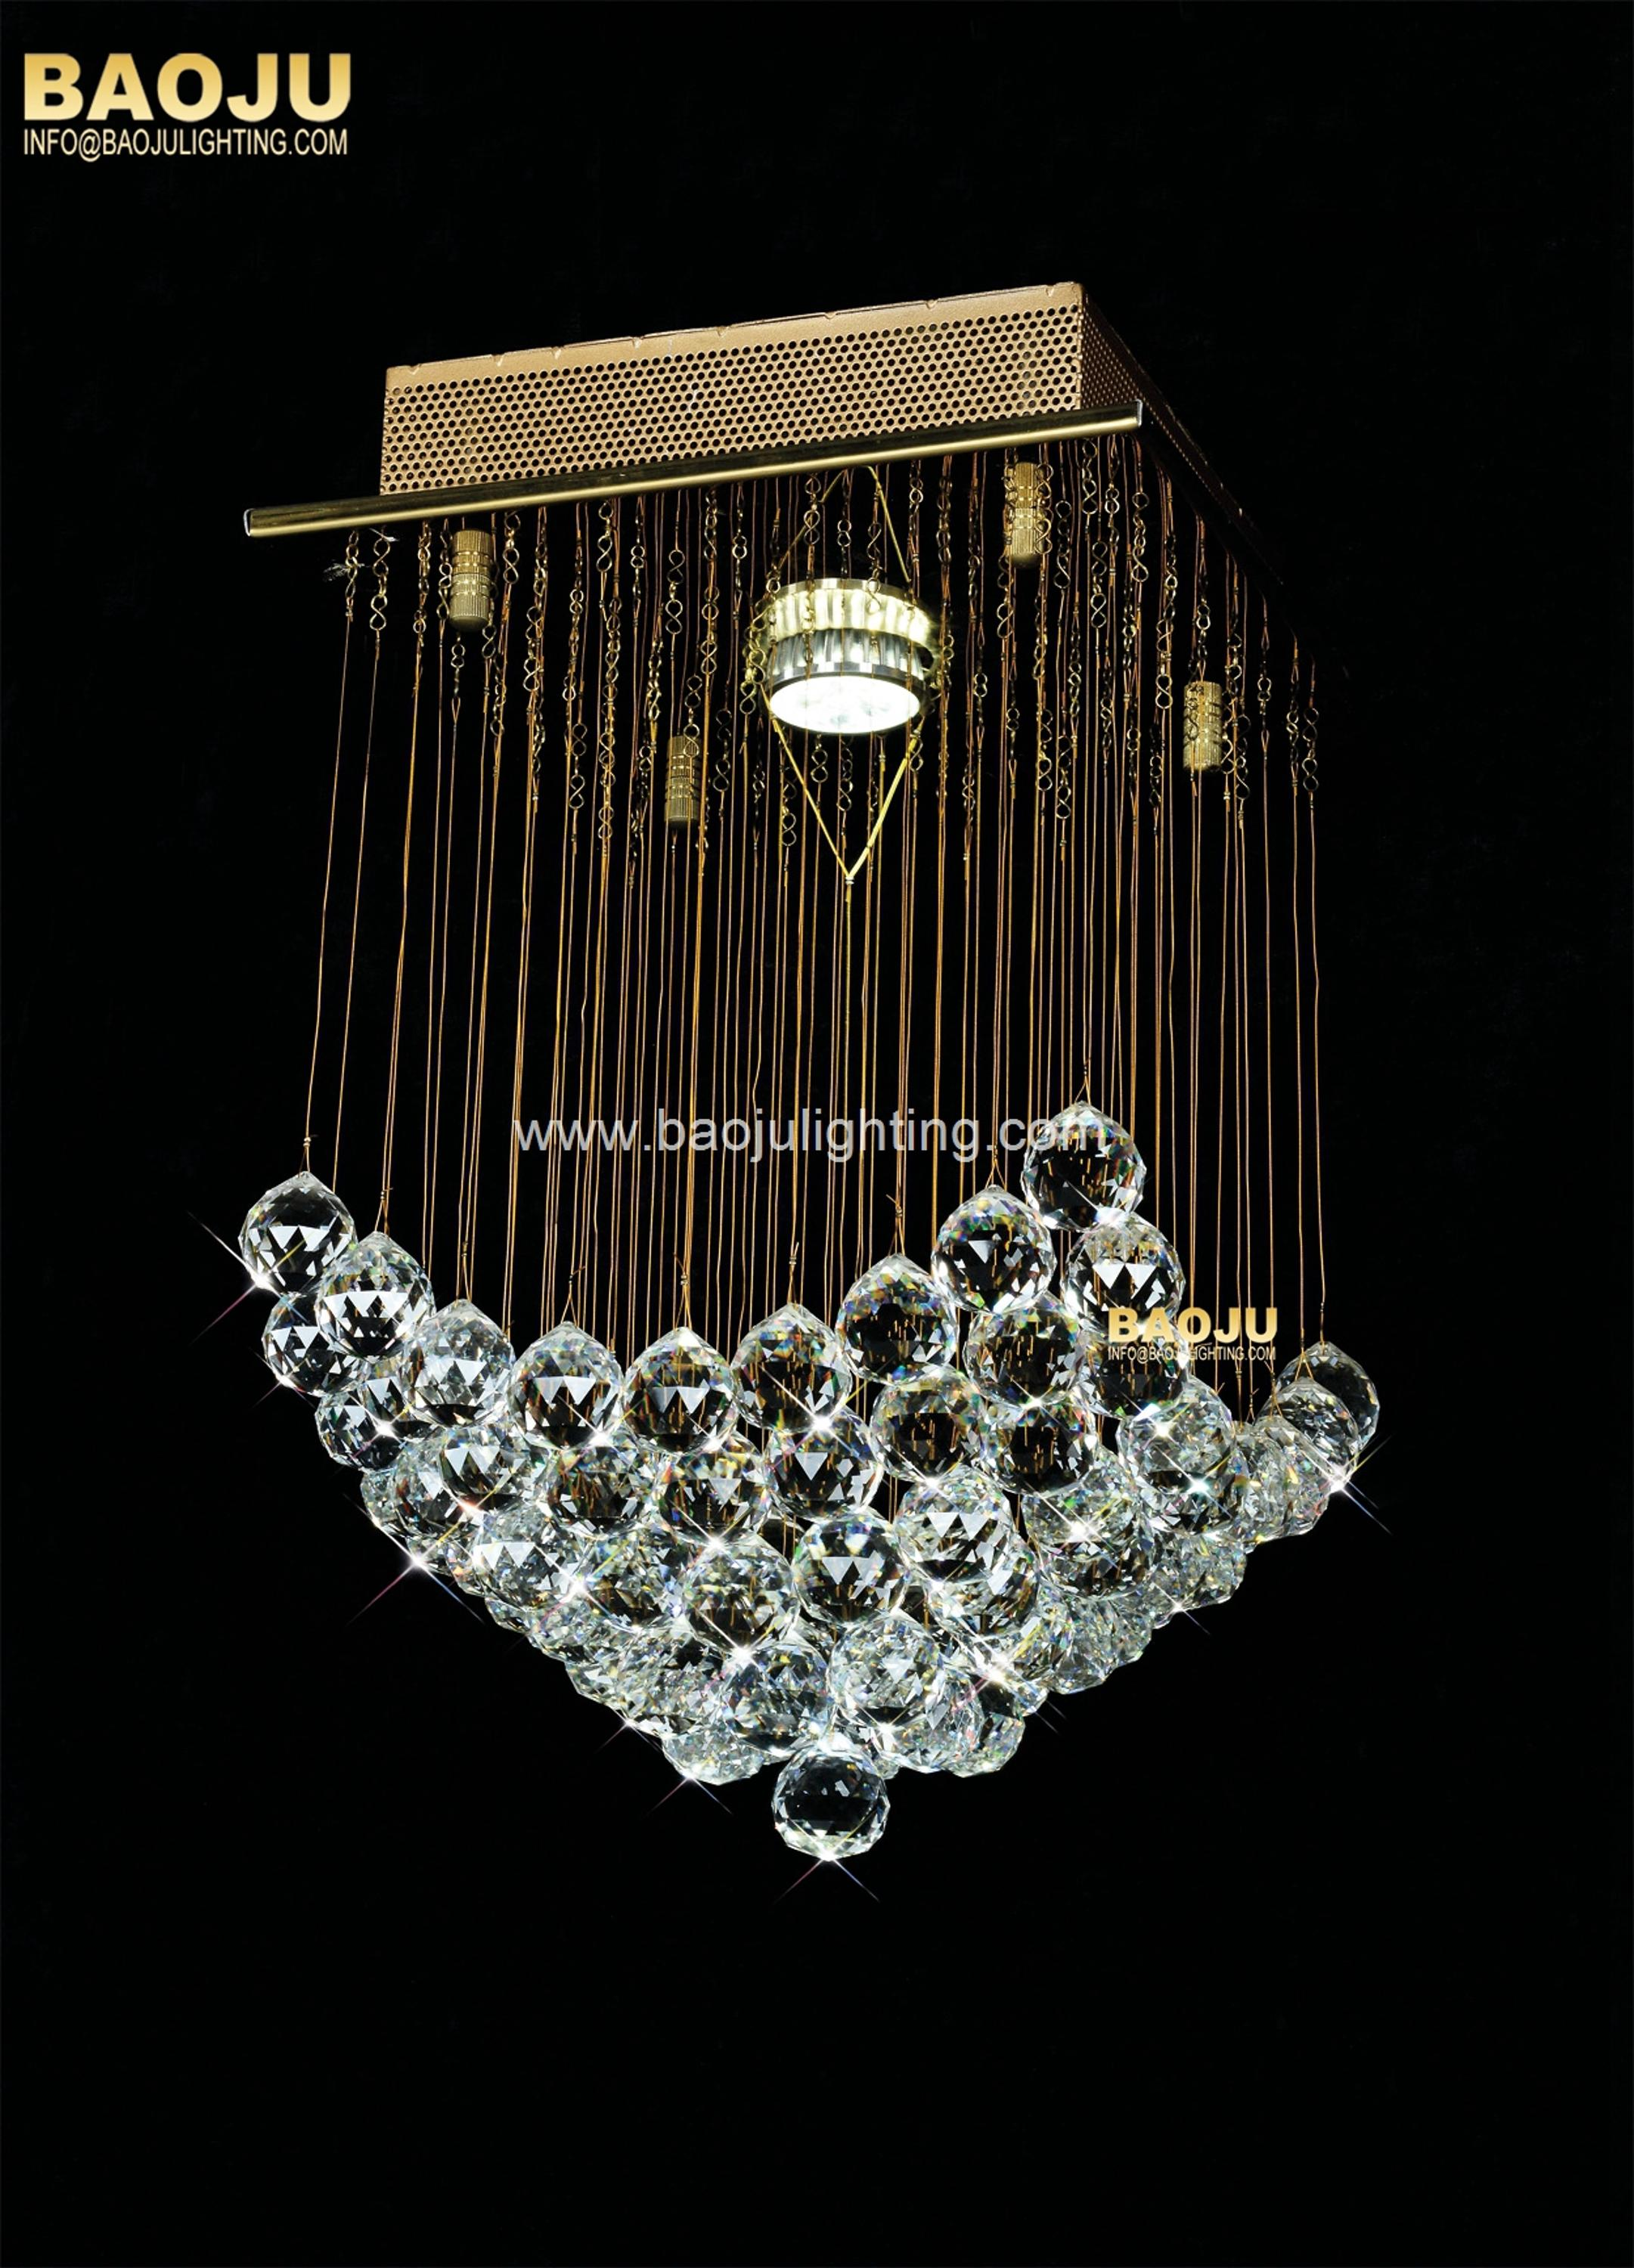 Led Light Decoration Small Crystal Chandeliers For Sale Bathroom